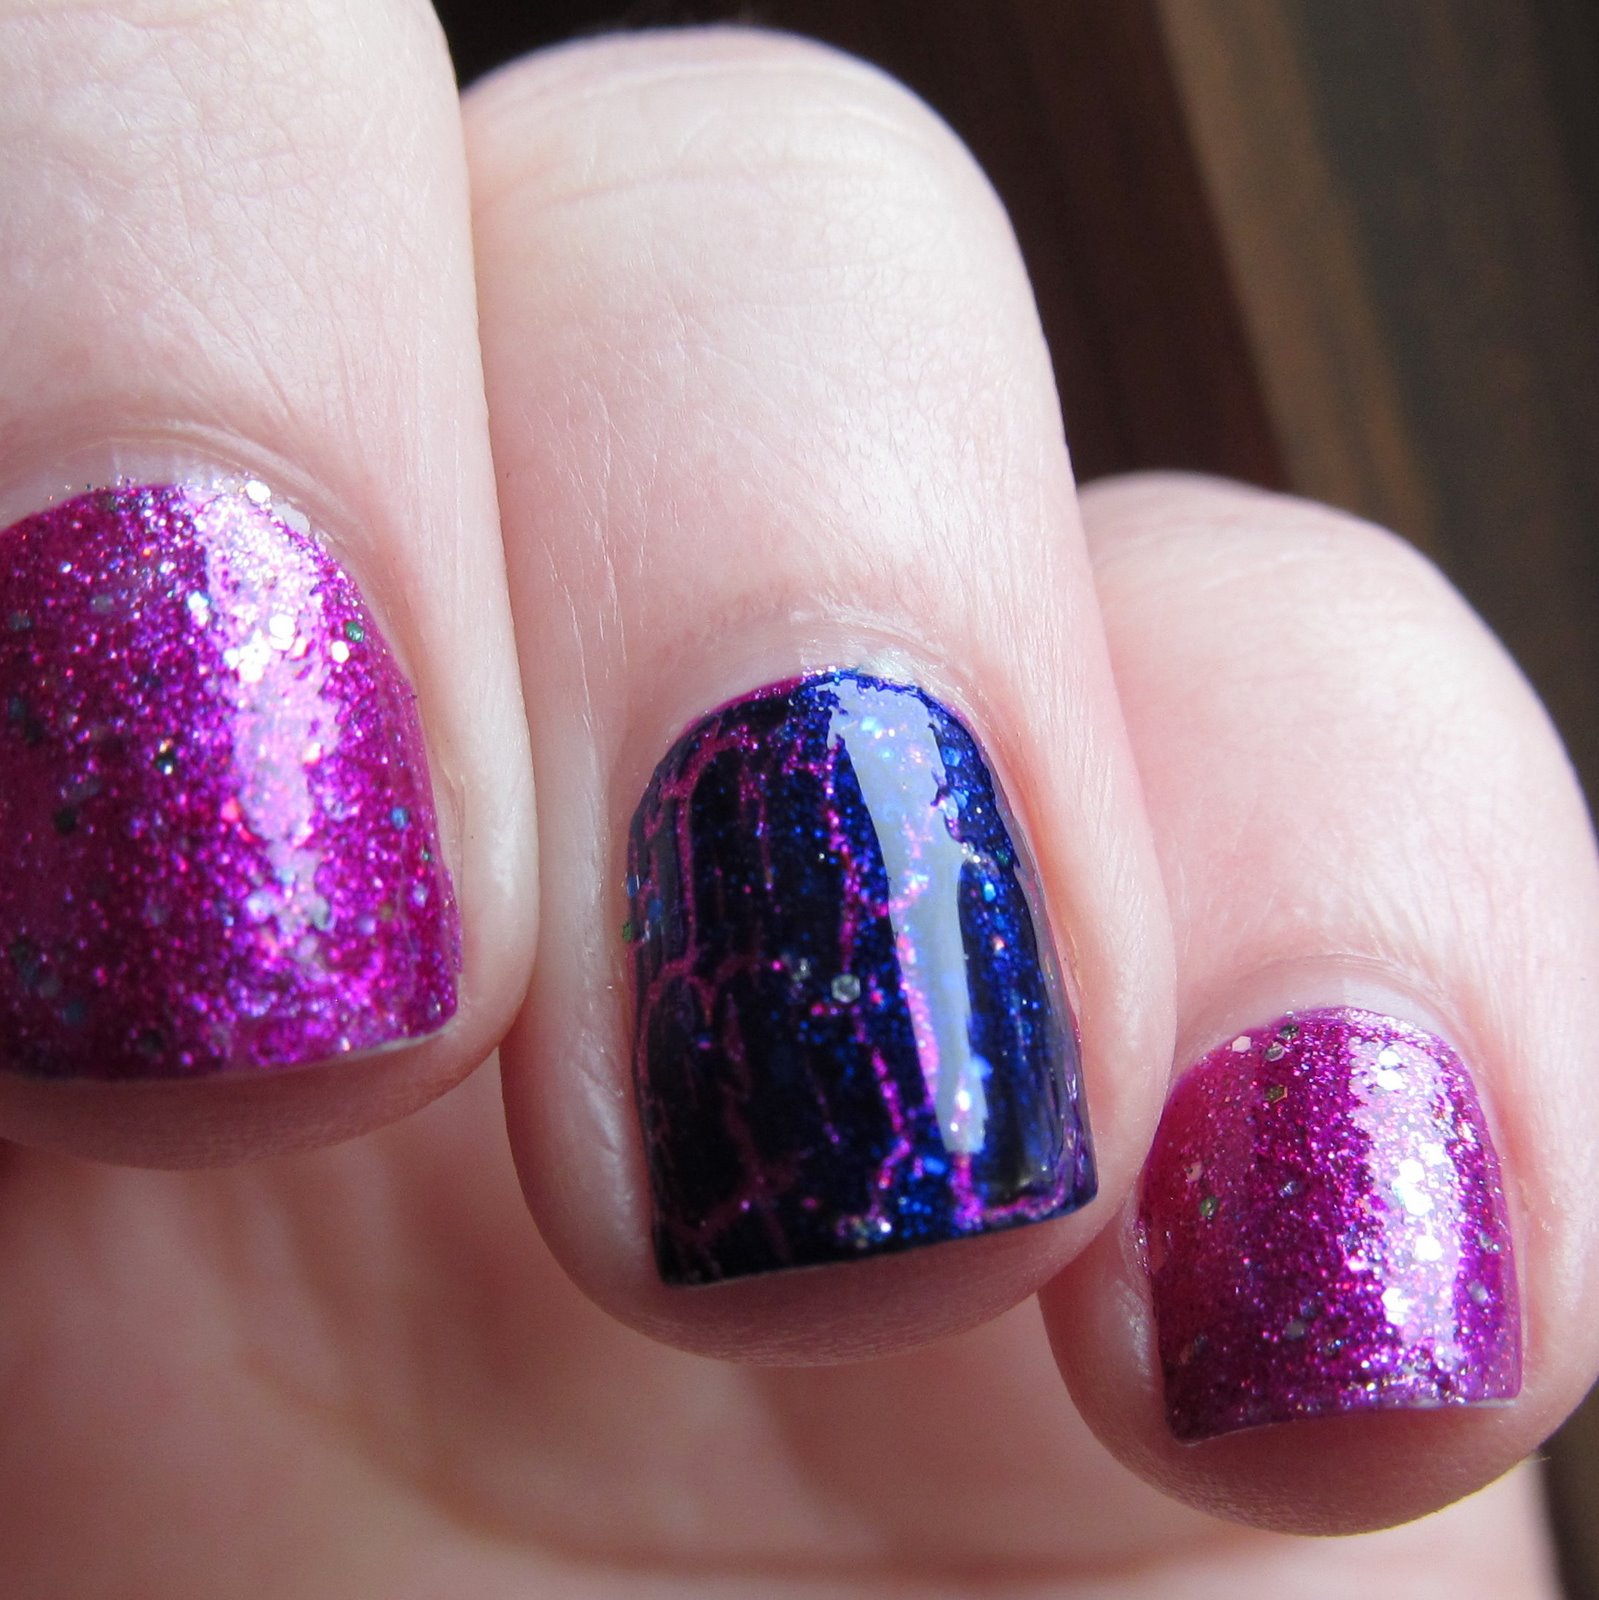 Kleancolor Metallic Fuchsia, China Glaze Full Spectrum & OPI Navy Shatter